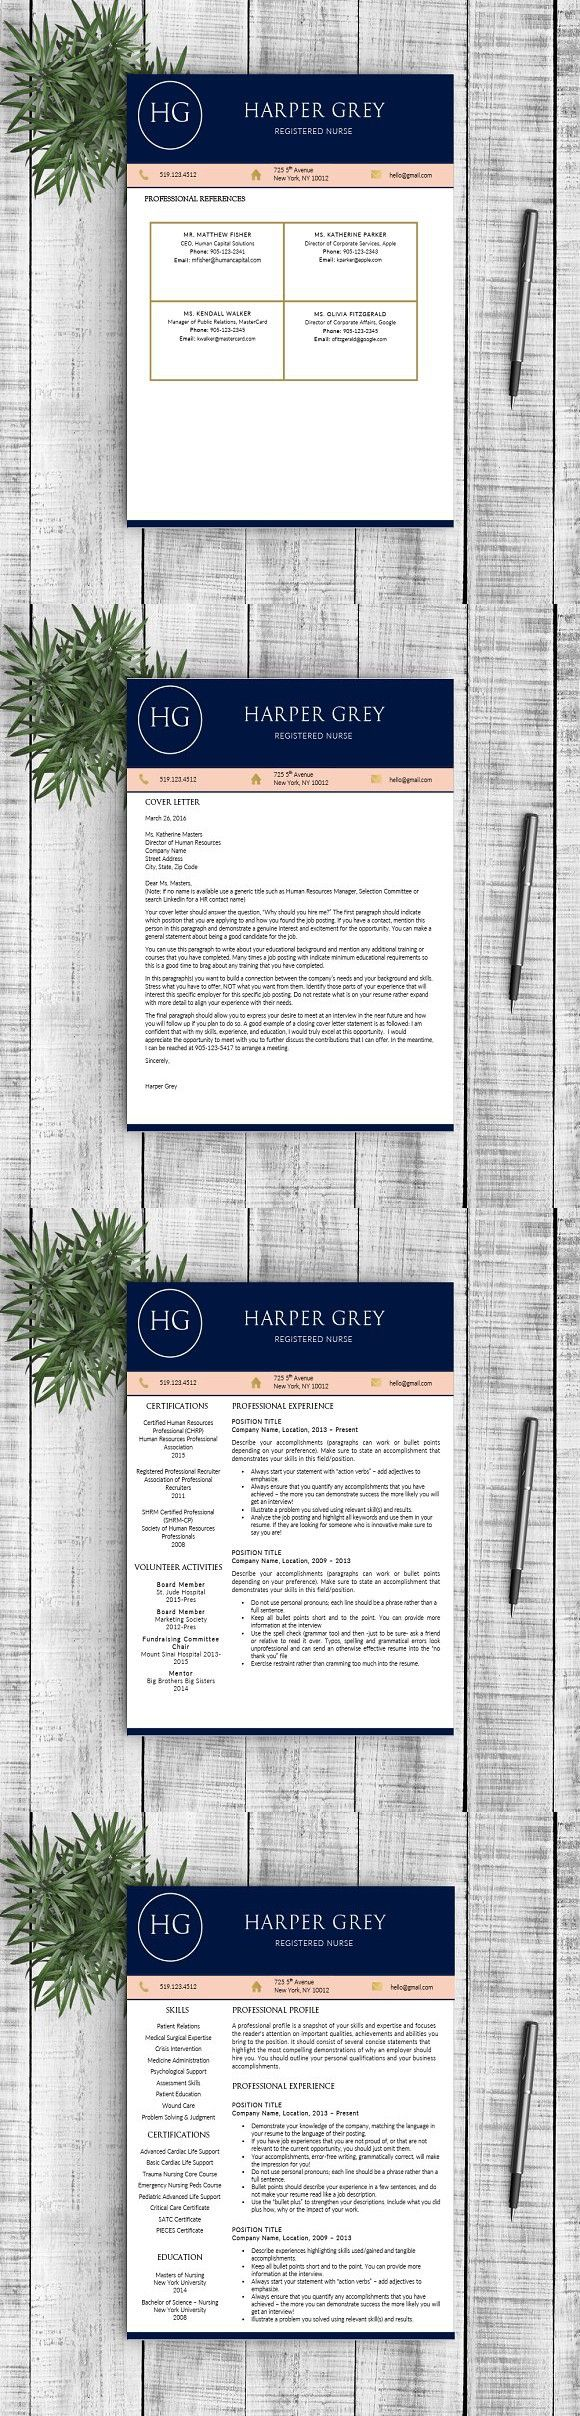 Resume Template Harper G resume resumes